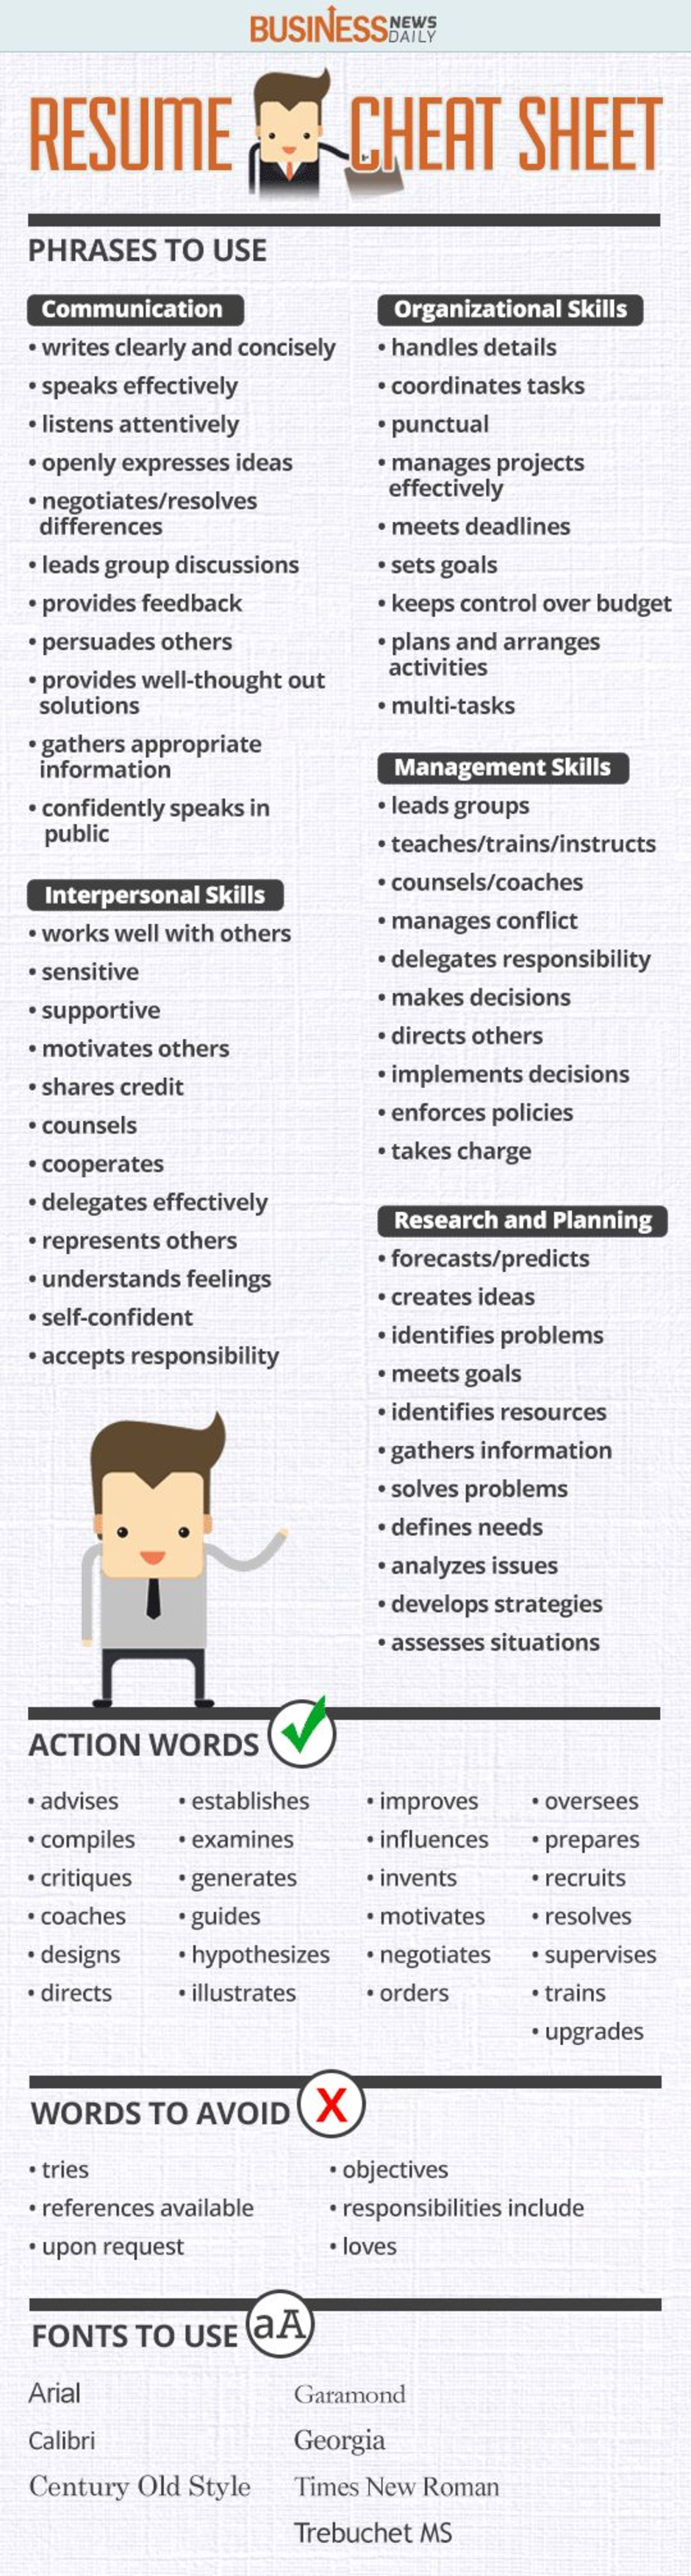 The Ultimate Cheat Sheet For The Perfect Resume Perfect resume